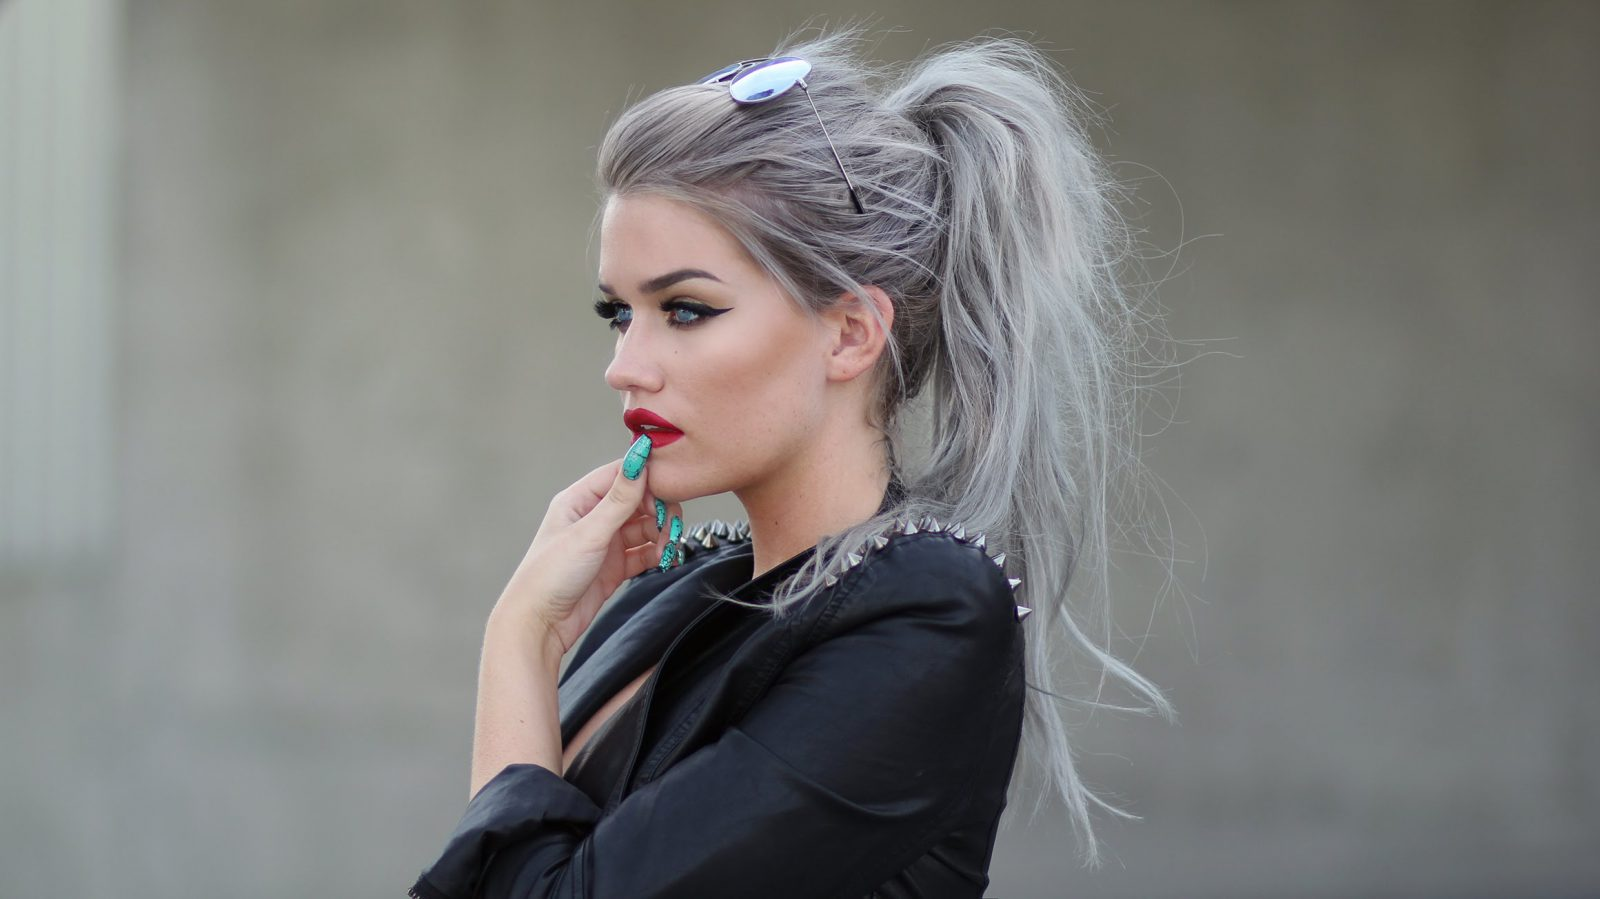 Top 5 Stylish Hair Color Trends 2020-2021